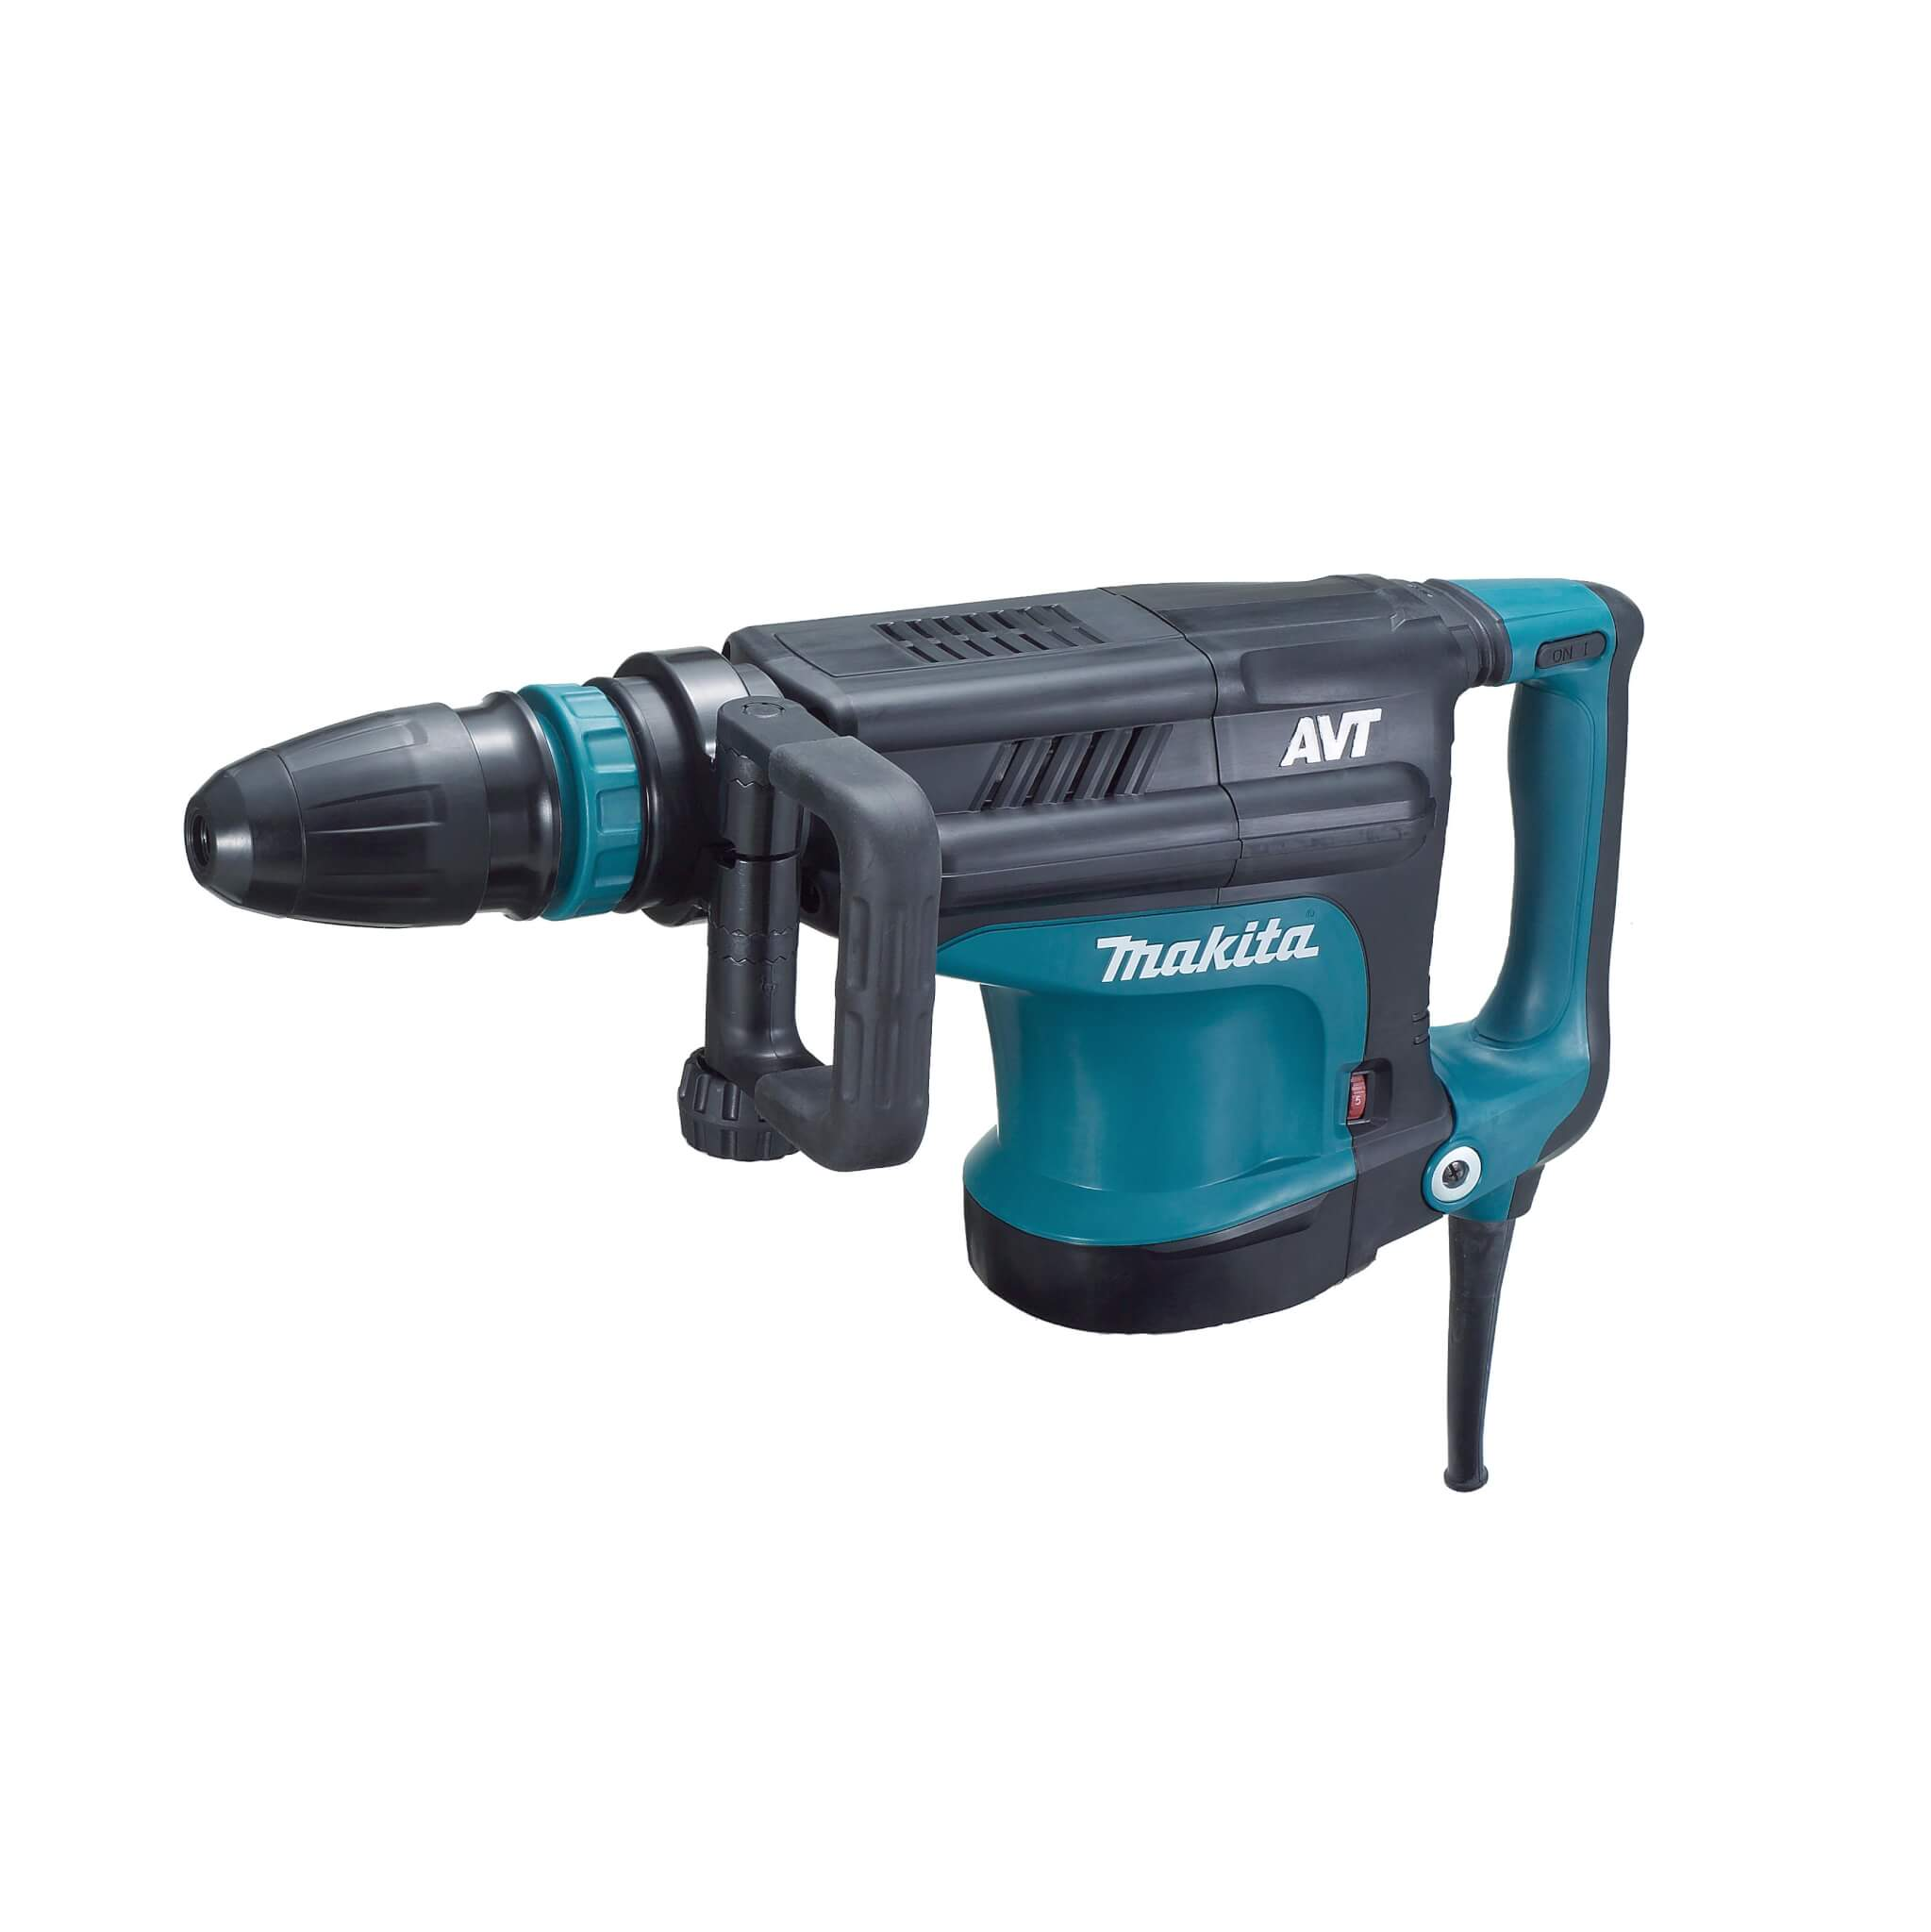 HM1213C- MAKITA DEMOLITION HAMMER 1510w-MAX